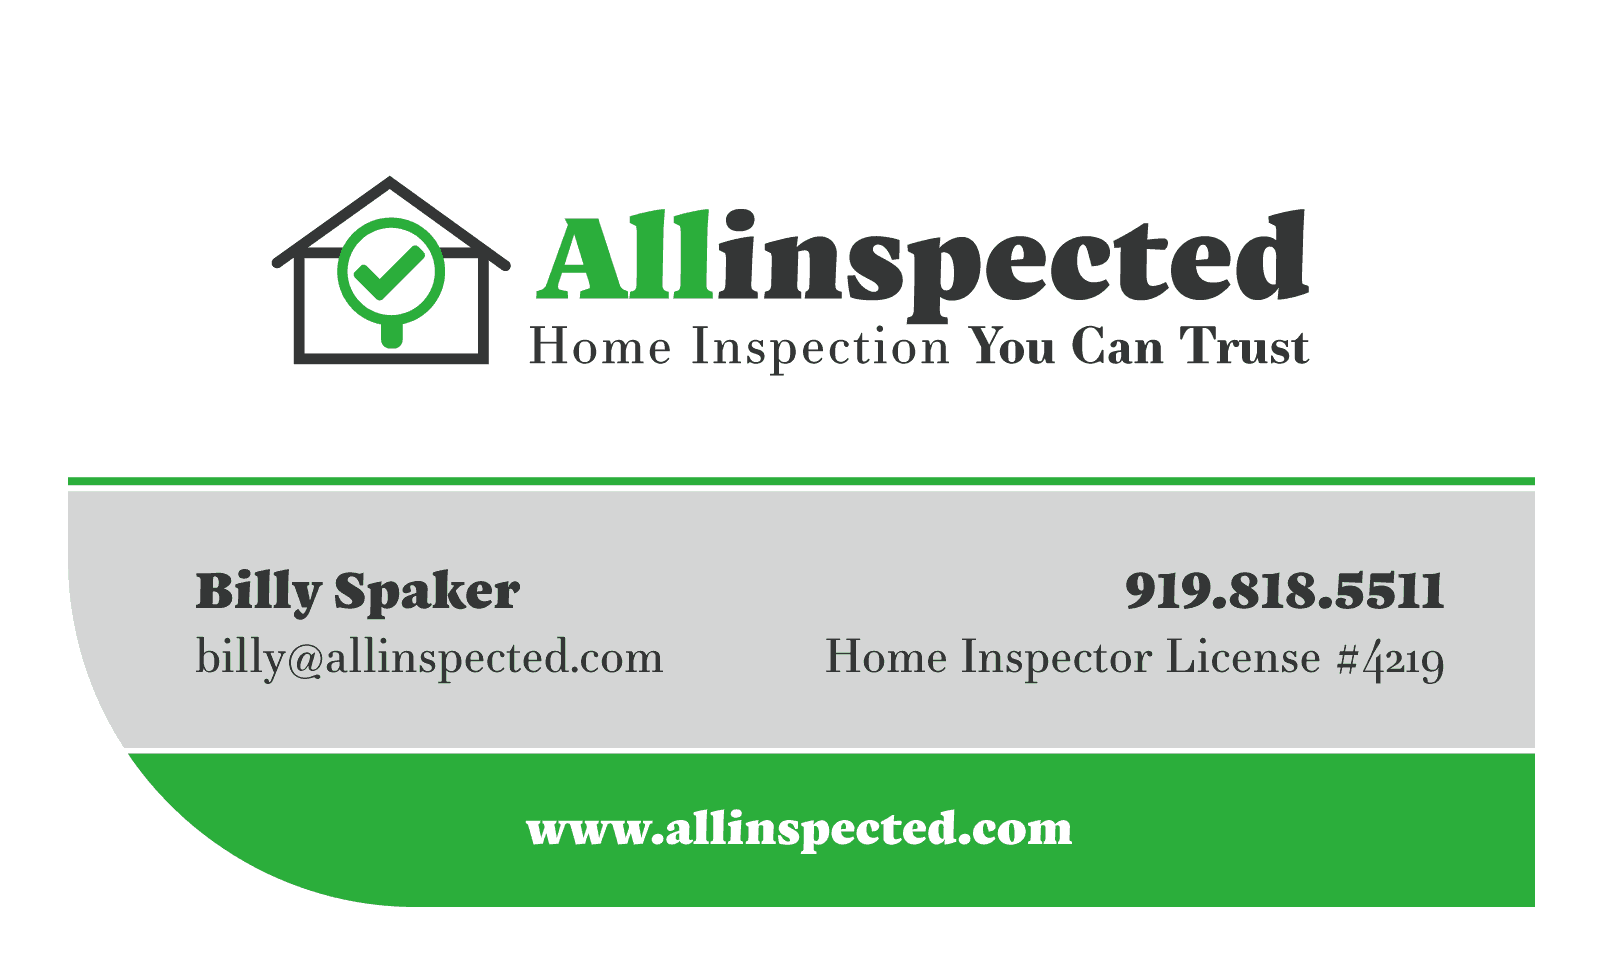 Home Inspection Business Card Design